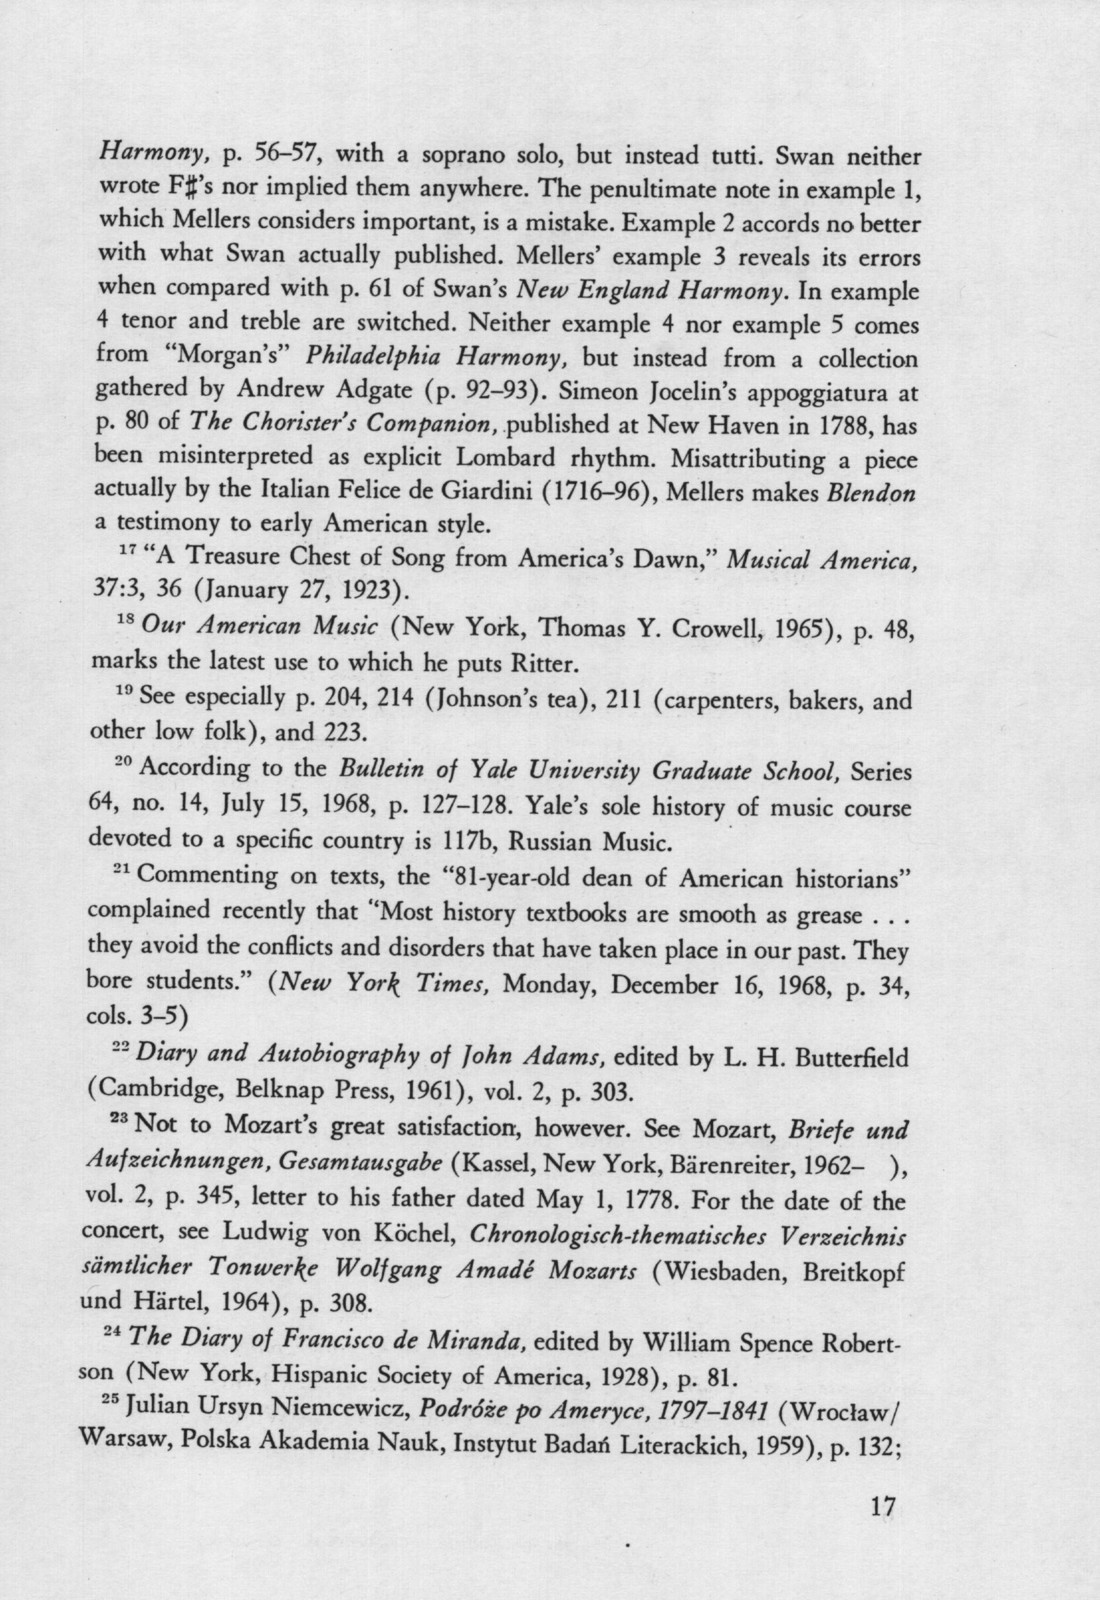 Philosophies of American Music History A lecture delivered in The Whittall Pavilion of The Library of Congress, January 9, 1969